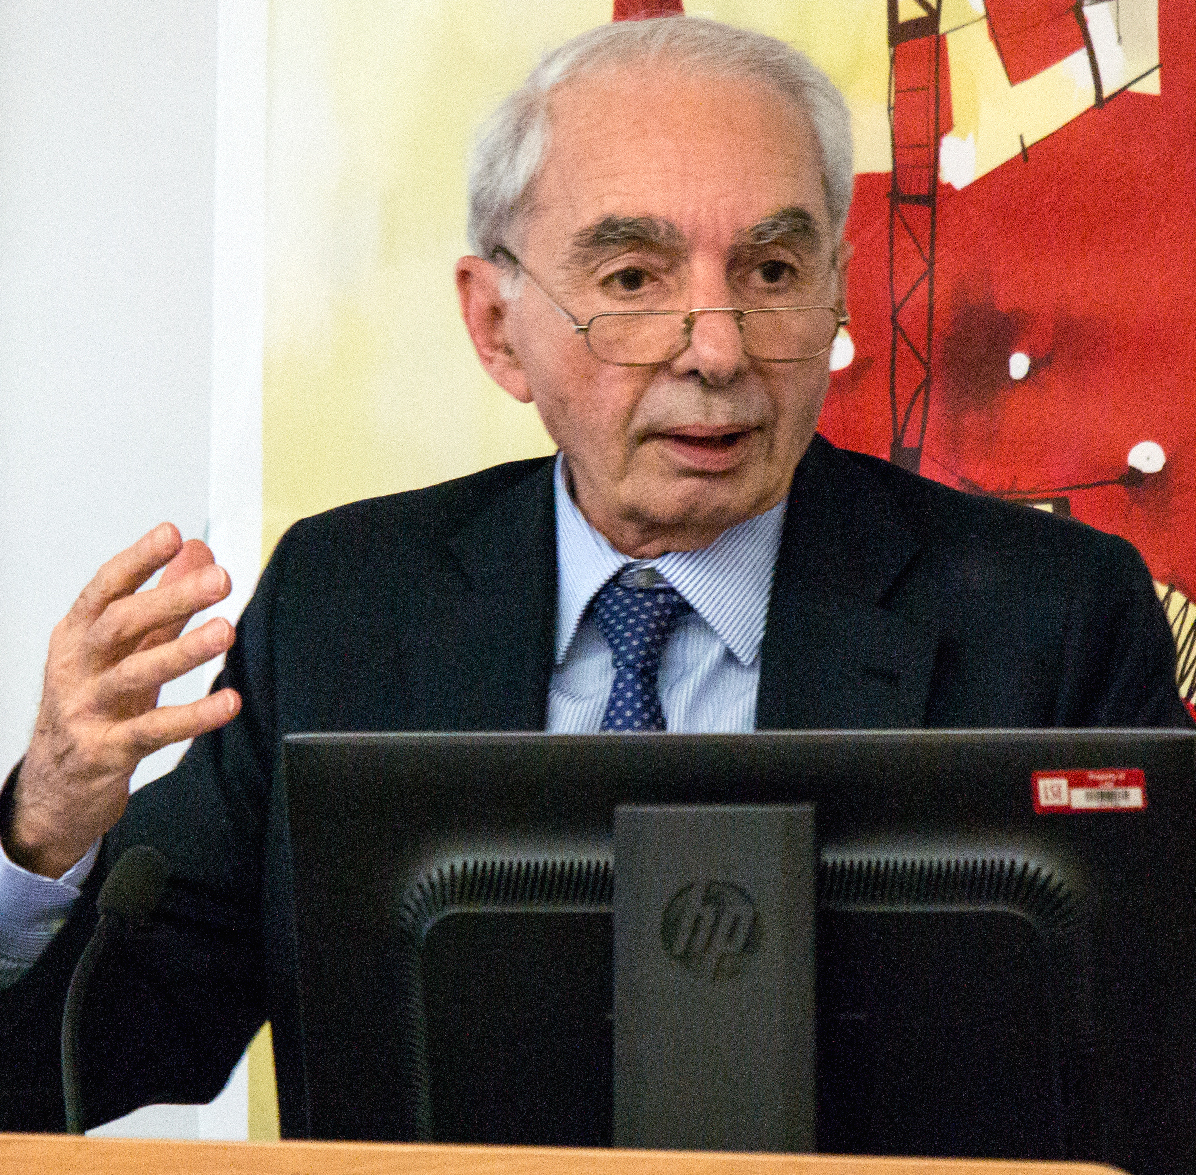 Guiliano Amato